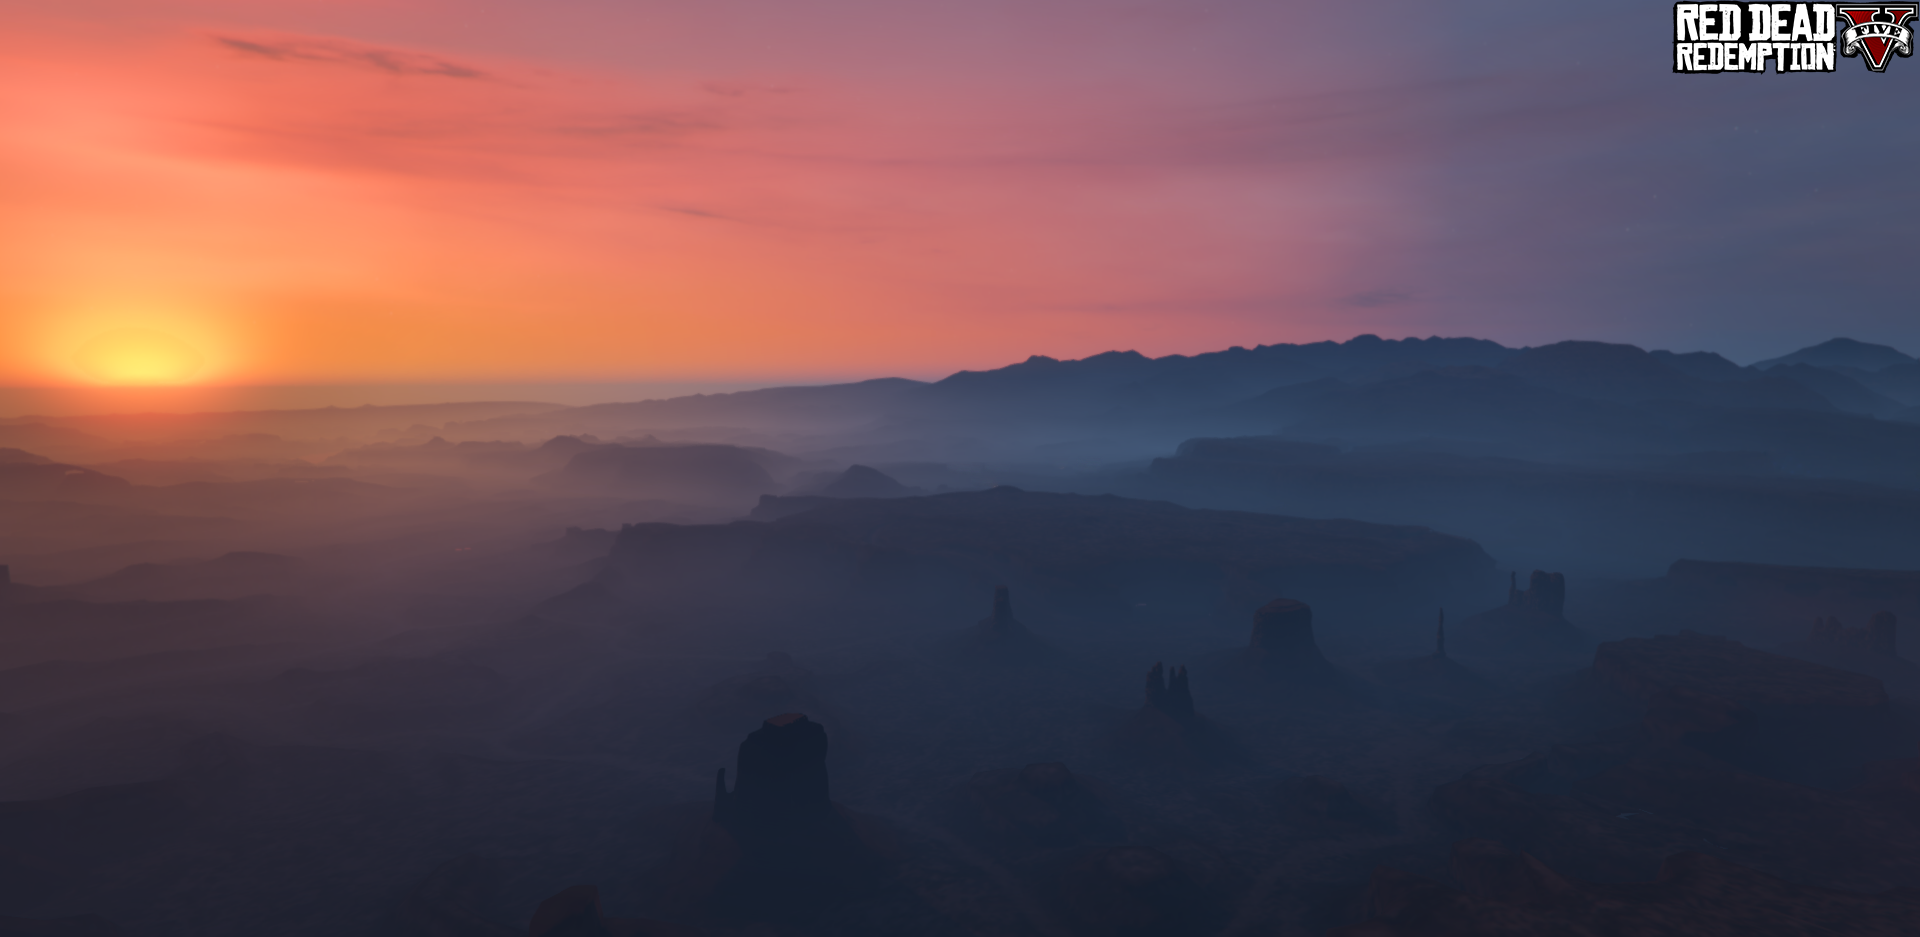 Modders are bringing the entire Red Dead Redemption map over